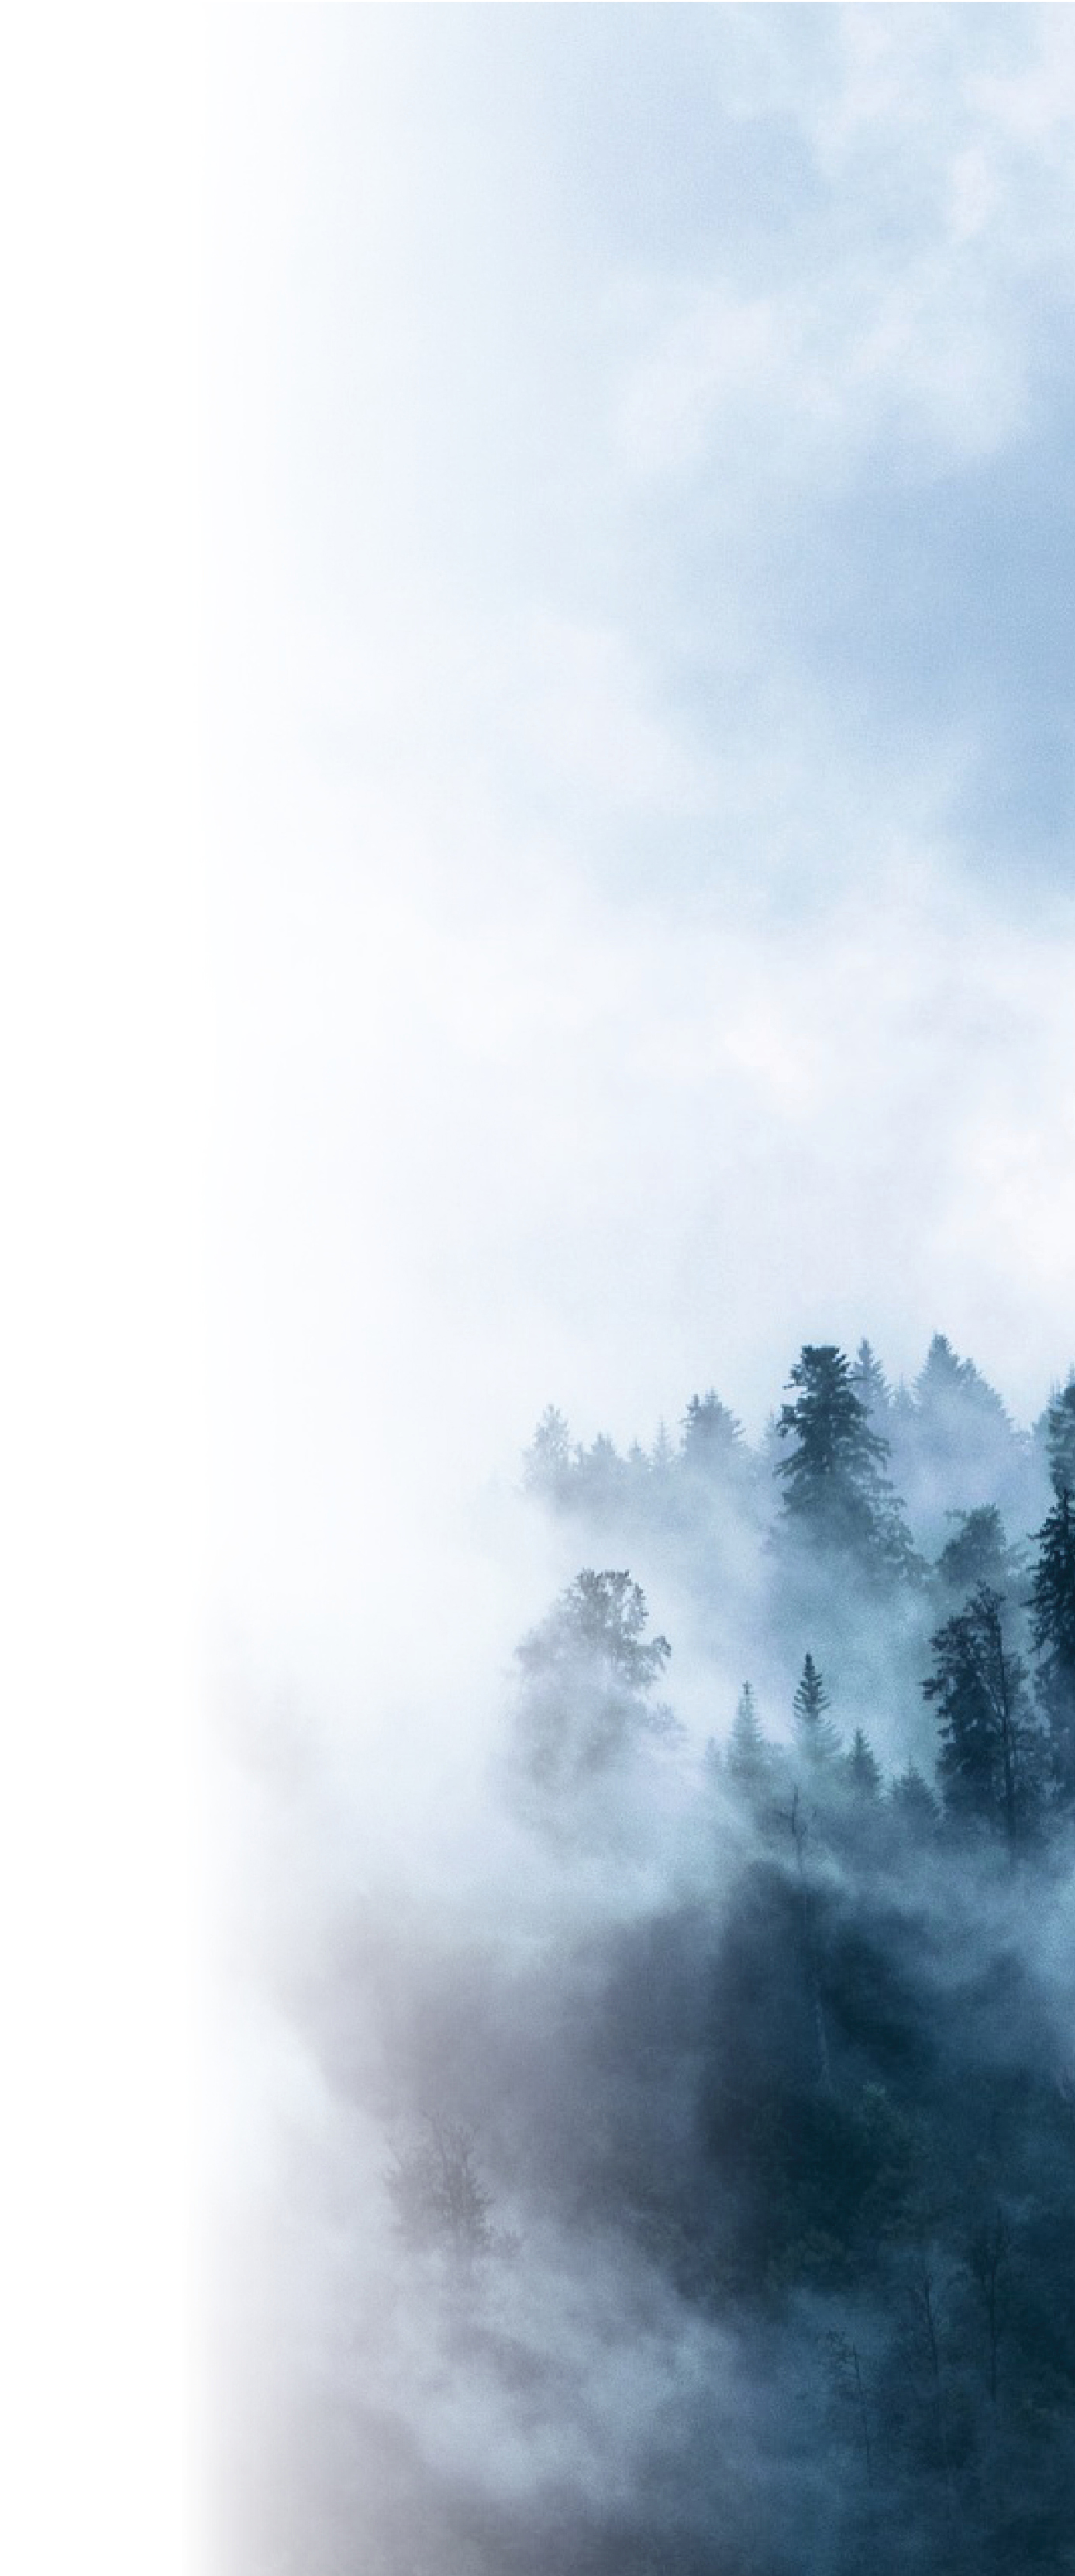 Cloudy sky and misty forest. Photo.